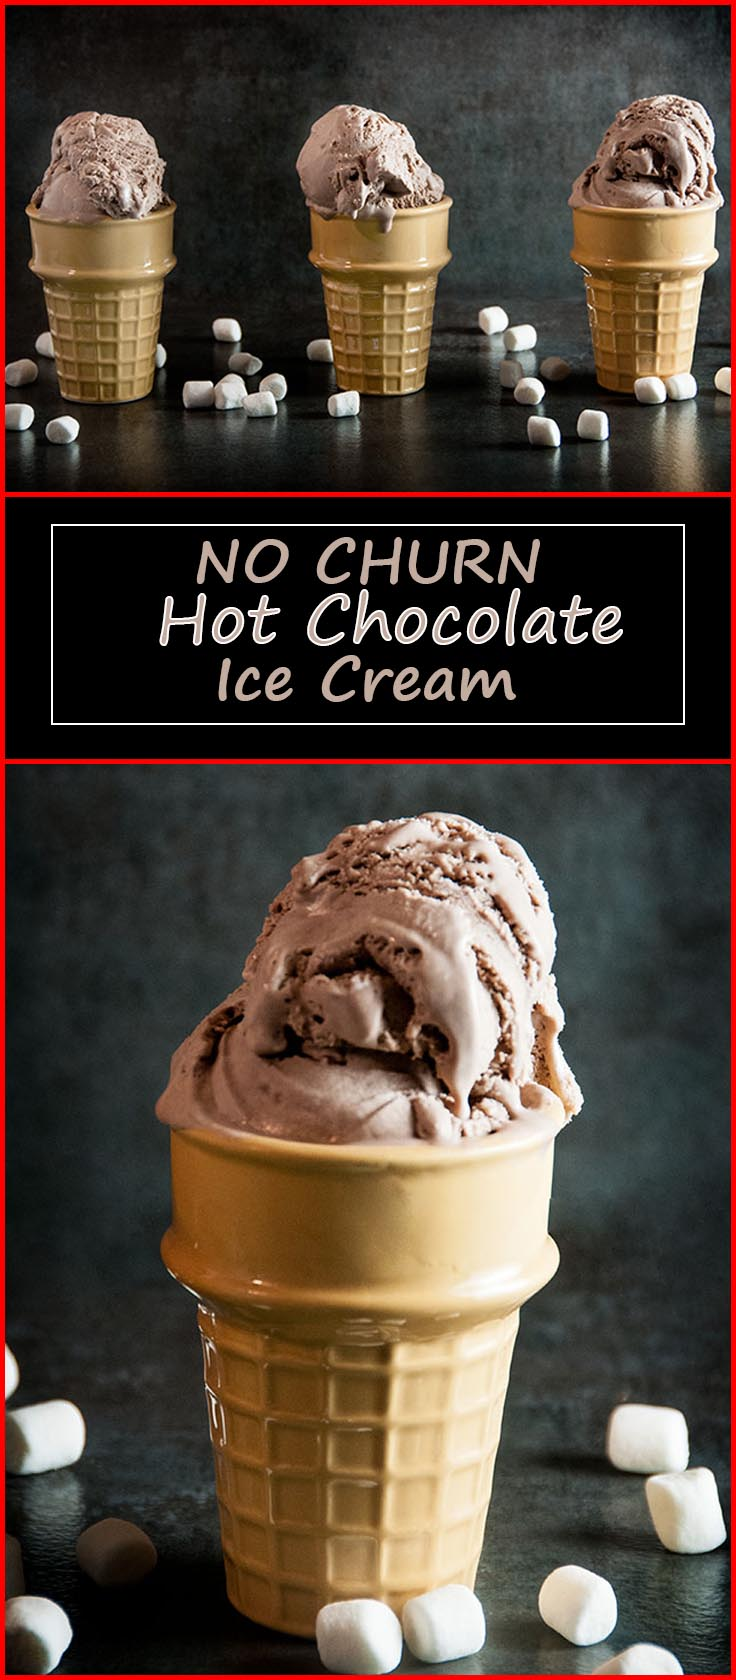 No Churn Hot Chocolate Ice Cream from www.SeasonedSprinkles.com